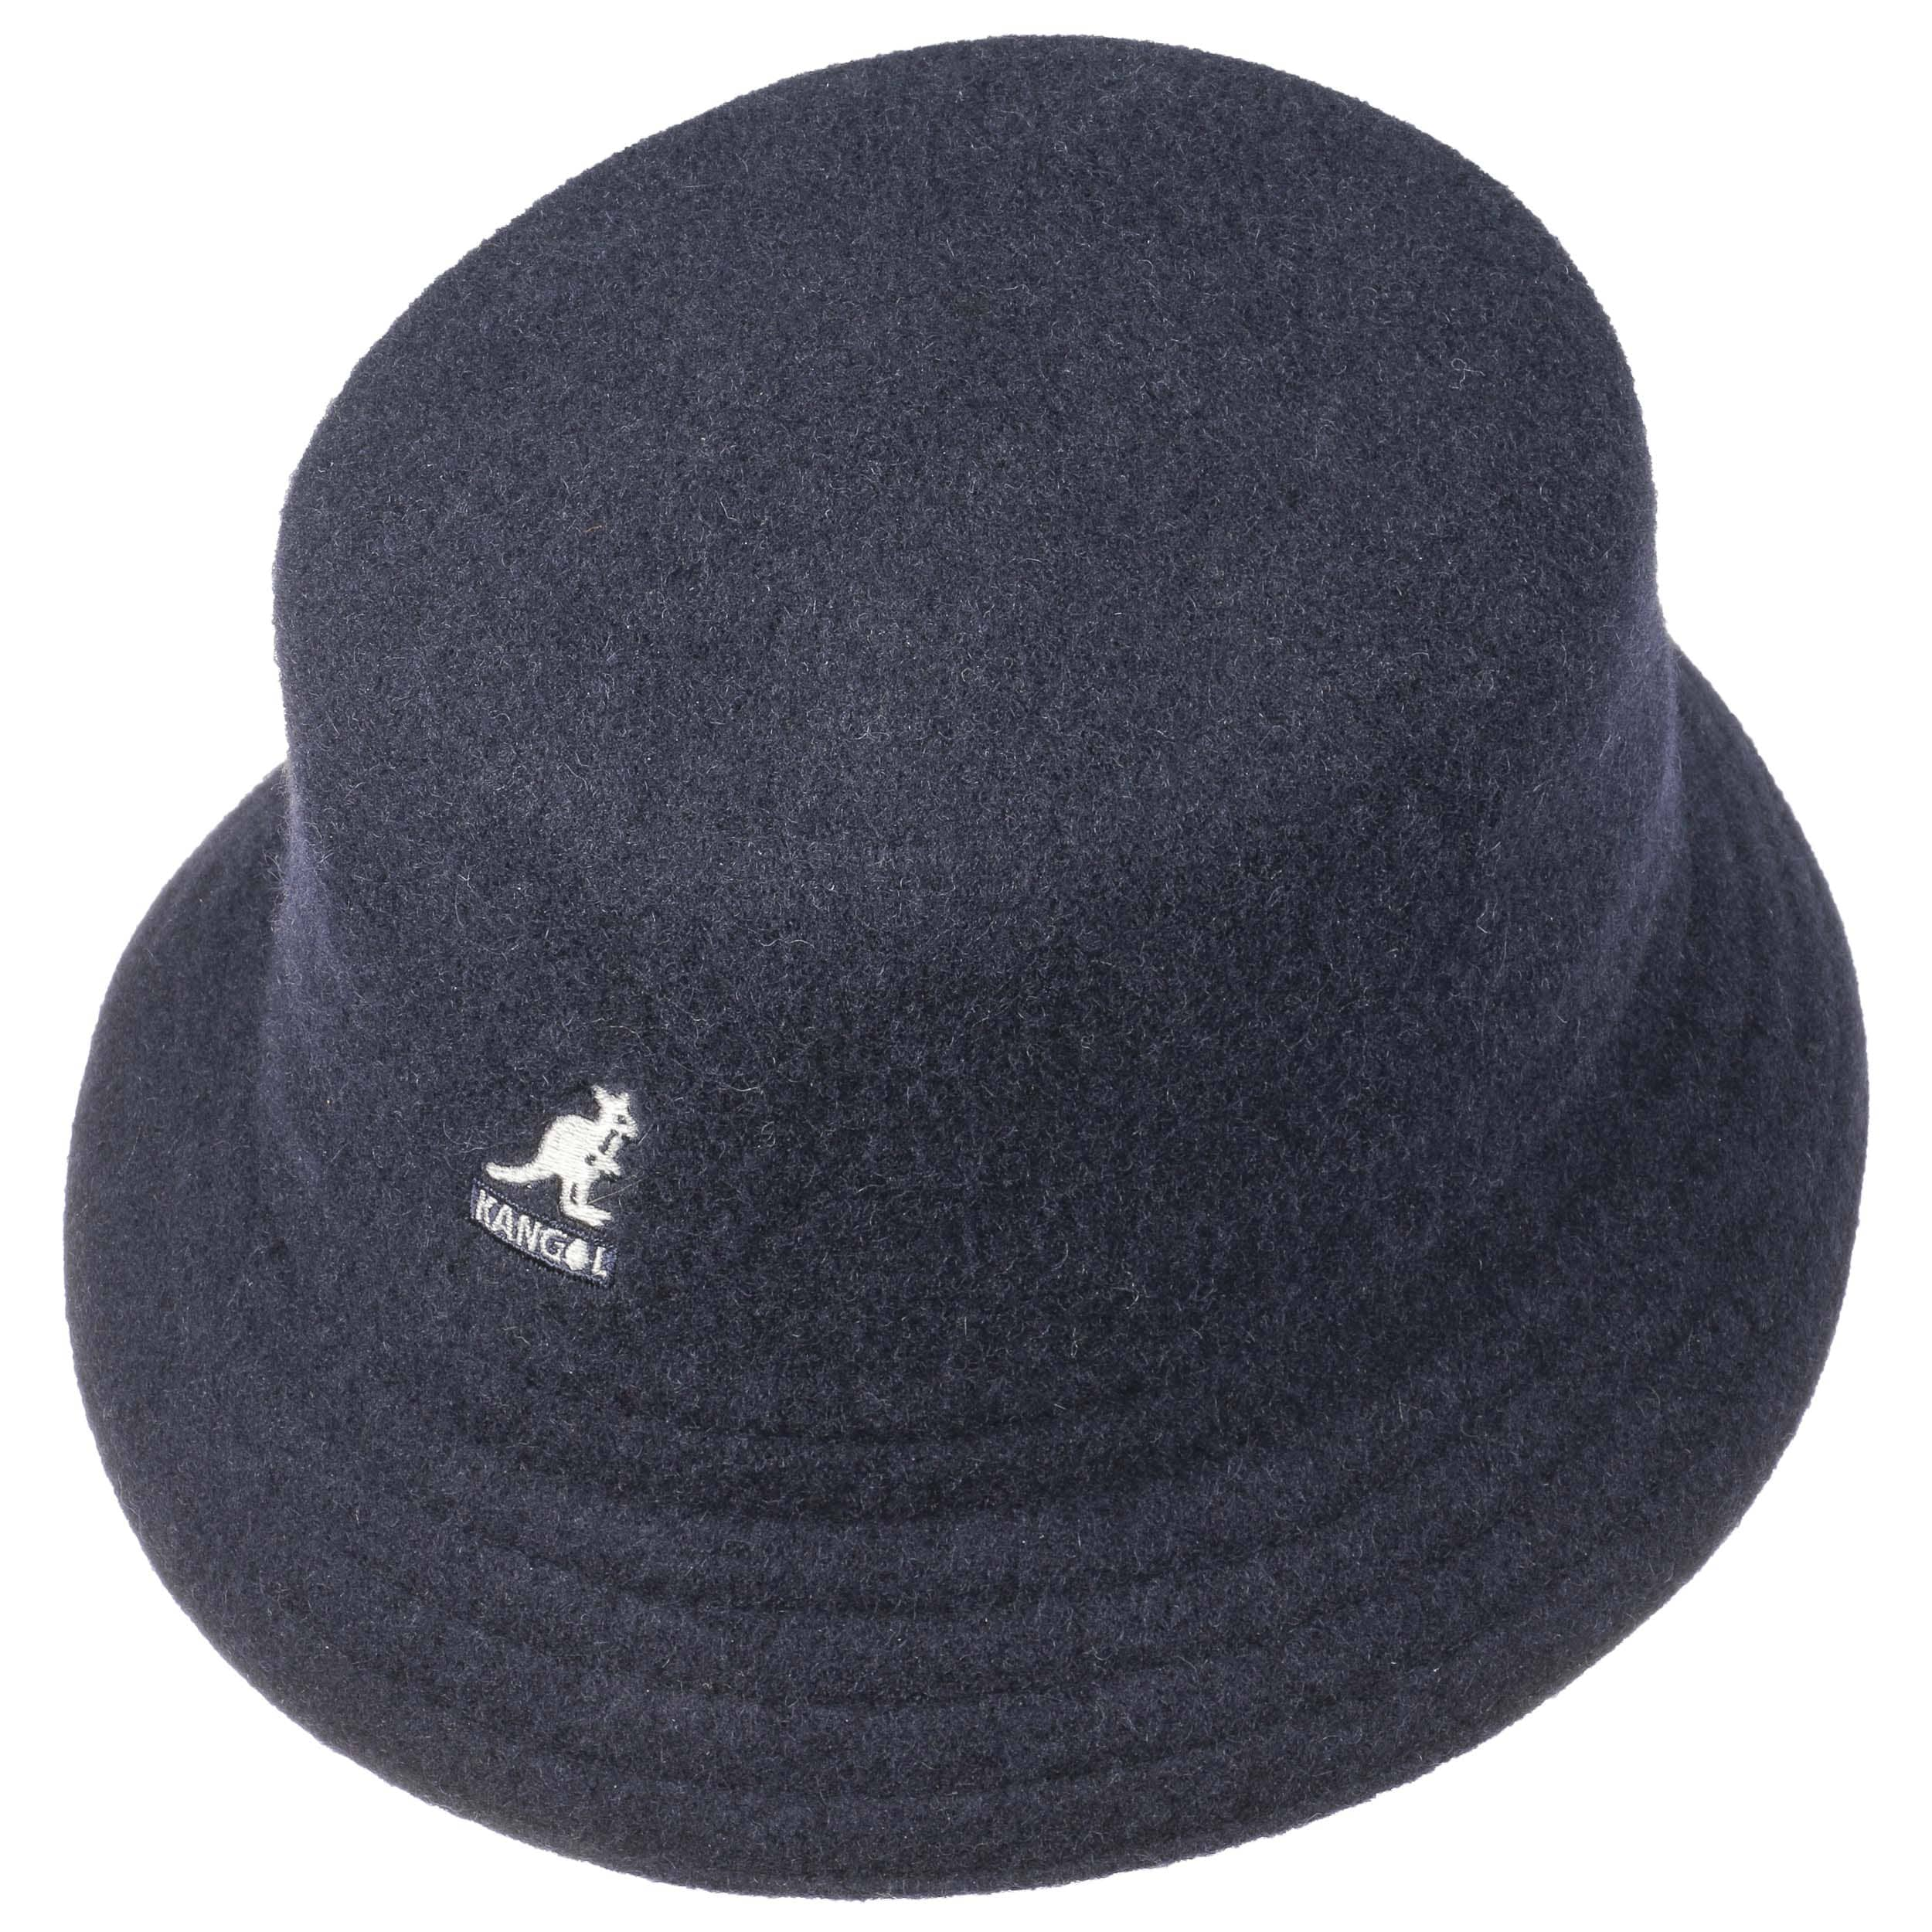 a9f69862d18b9 ... Wool Lahinch Bucket Hat by Kangol - black 1 ...